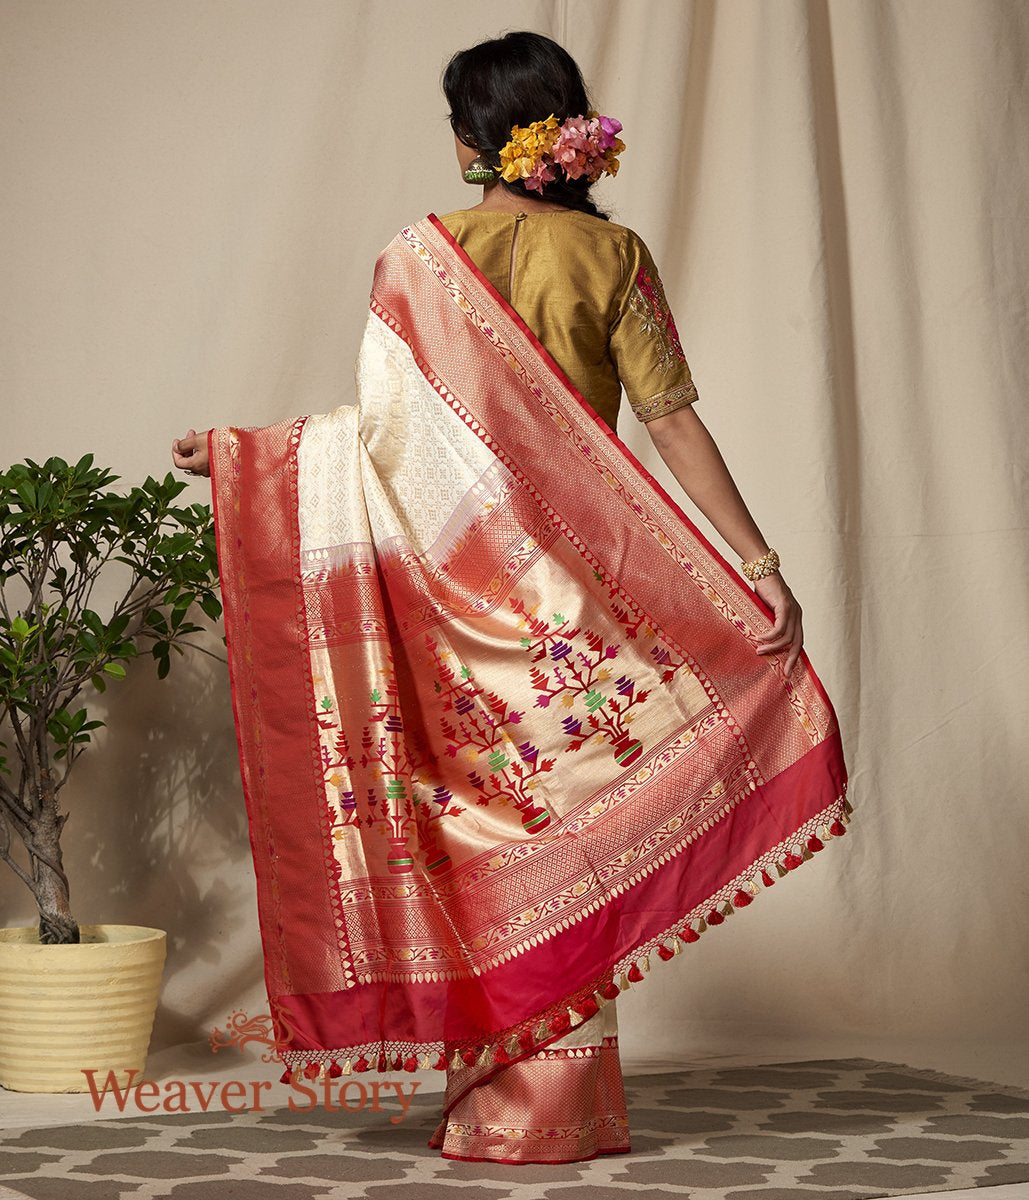 Handwoven Offwhite and Gold Kimkhab Saree with Red Border and Pallu